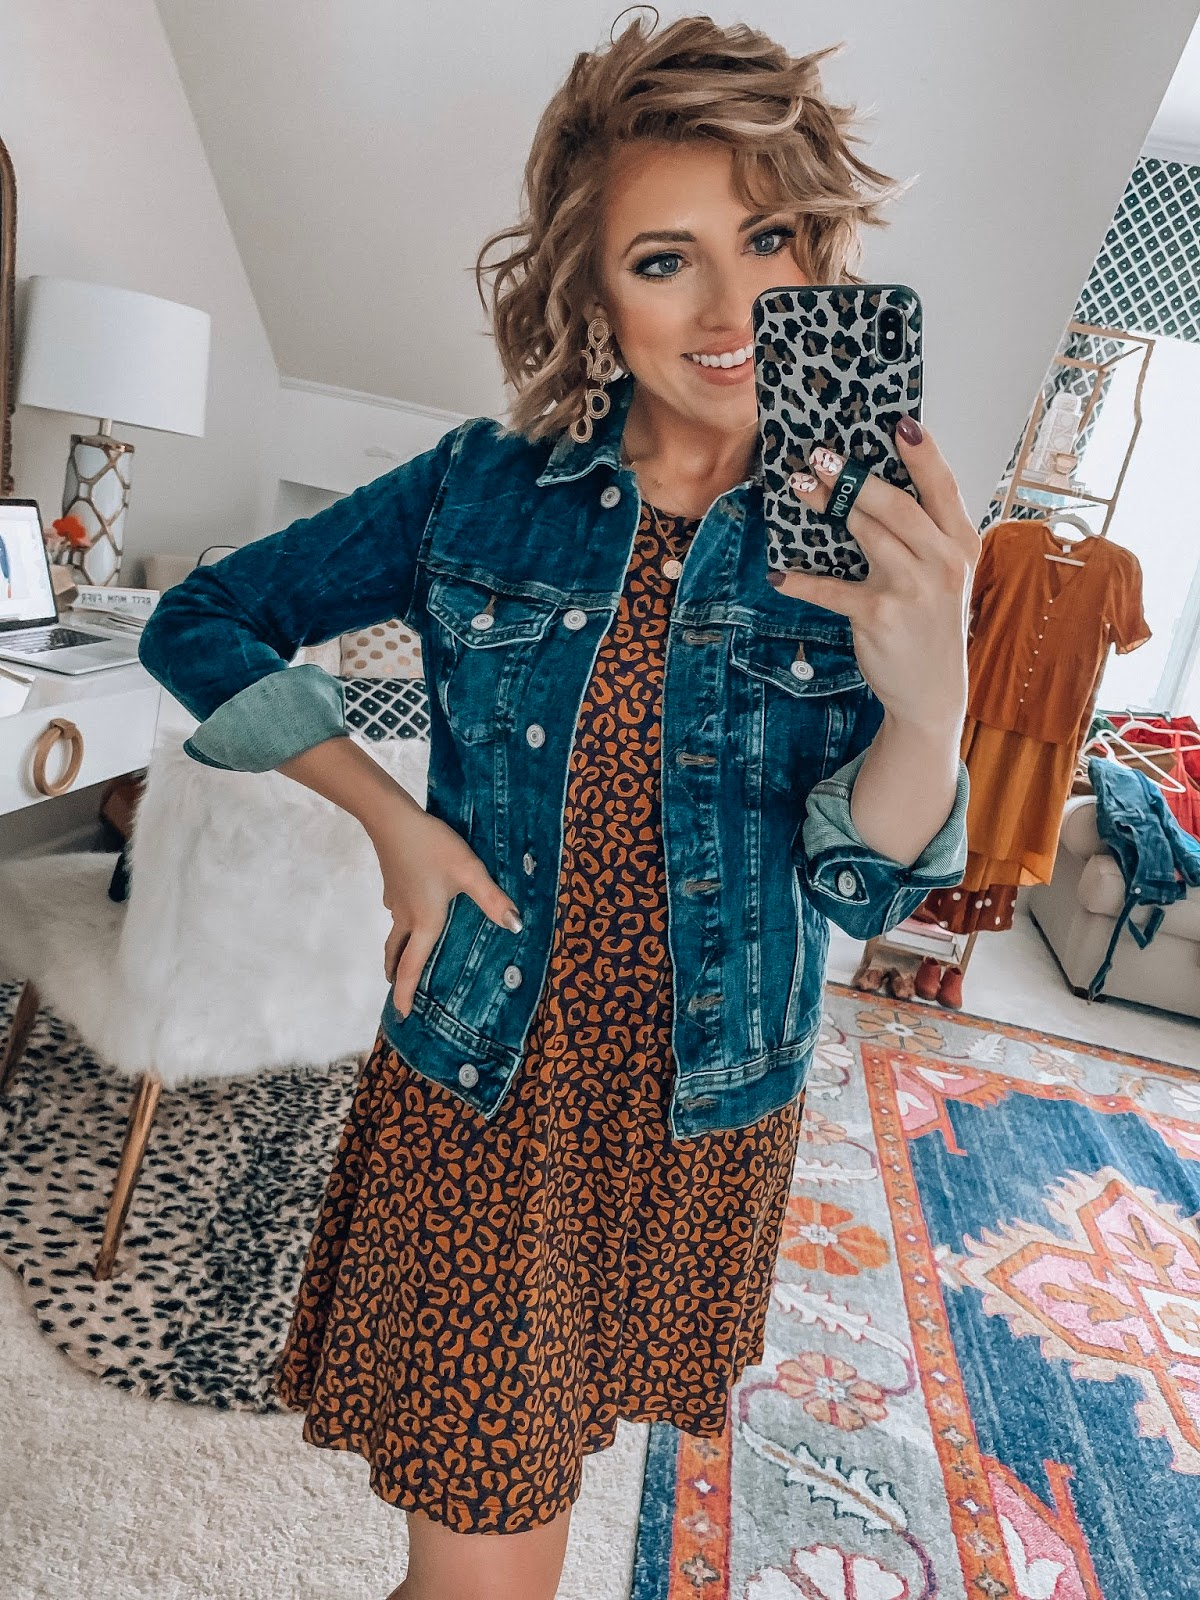 Old Navy Leopard Dress + Denim Jacket - Something Delightful Blog #affordablefashion